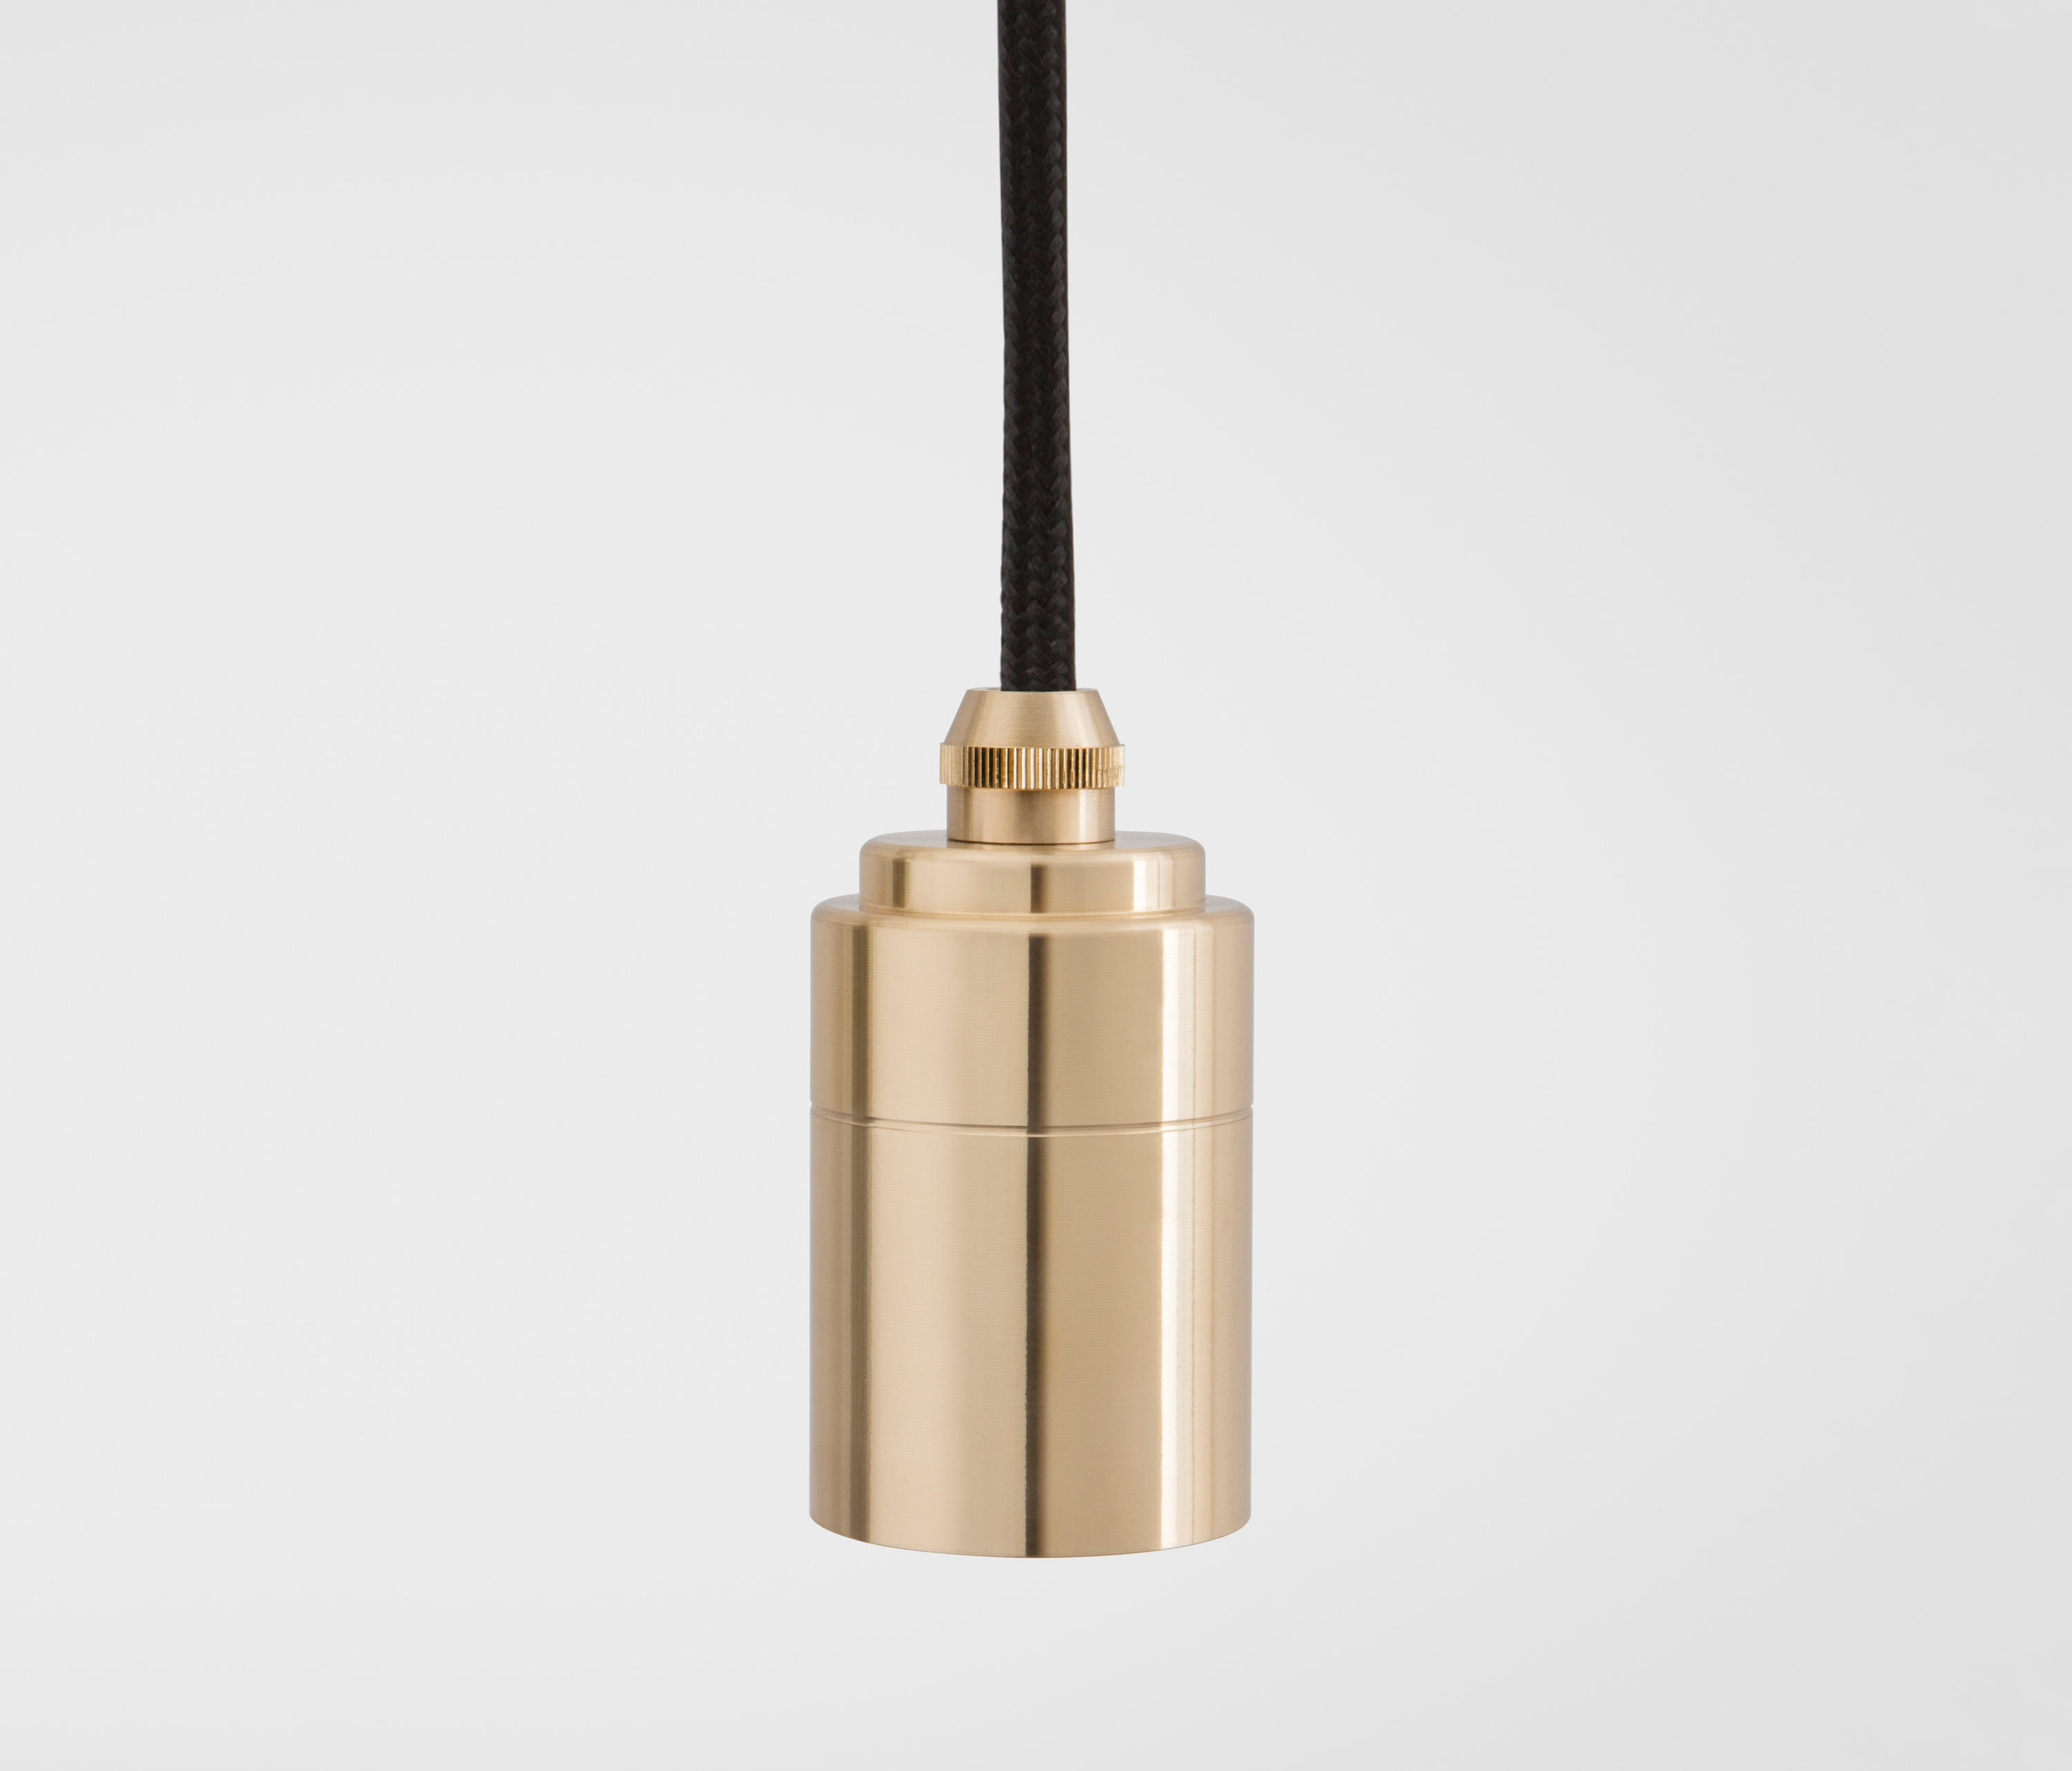 part in made pendant brass open by lamps as germany designed shop lj psi up on crowdyhouse lamp ansicht freigestellt